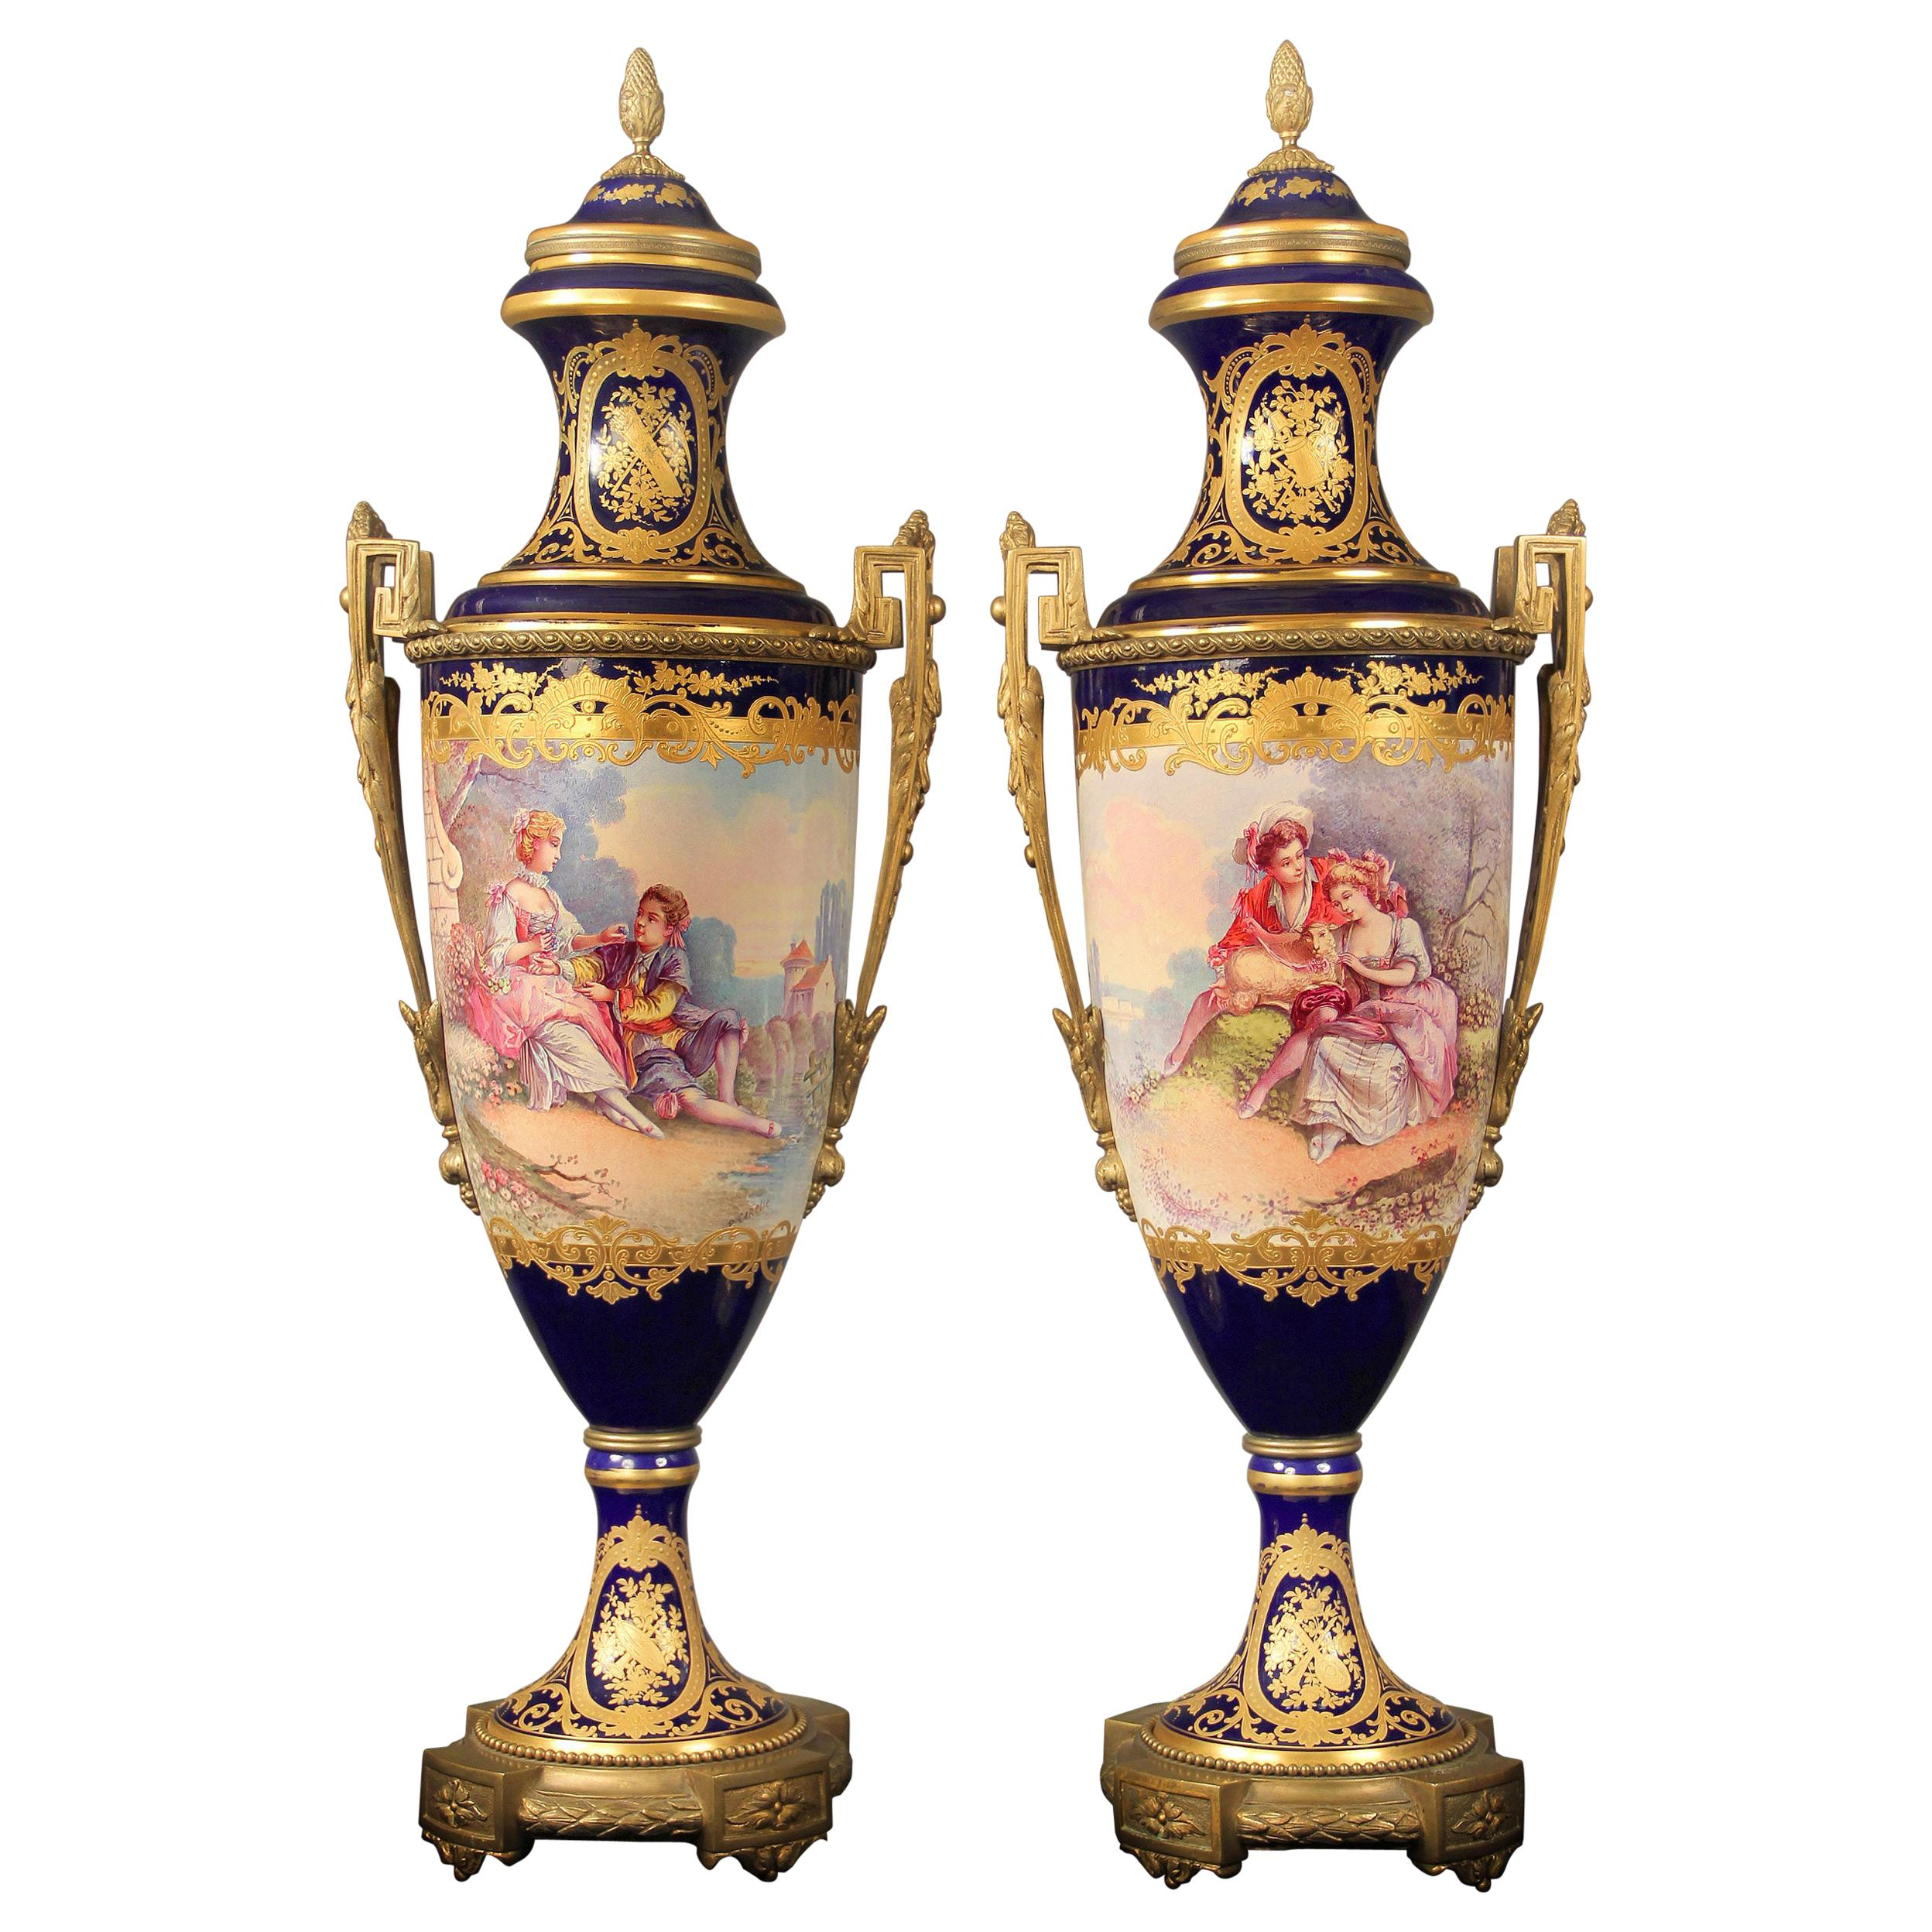 Nice Pair of Late 19th Century Gilt Bronze Mounted Sèvres Style Porcelain Vases